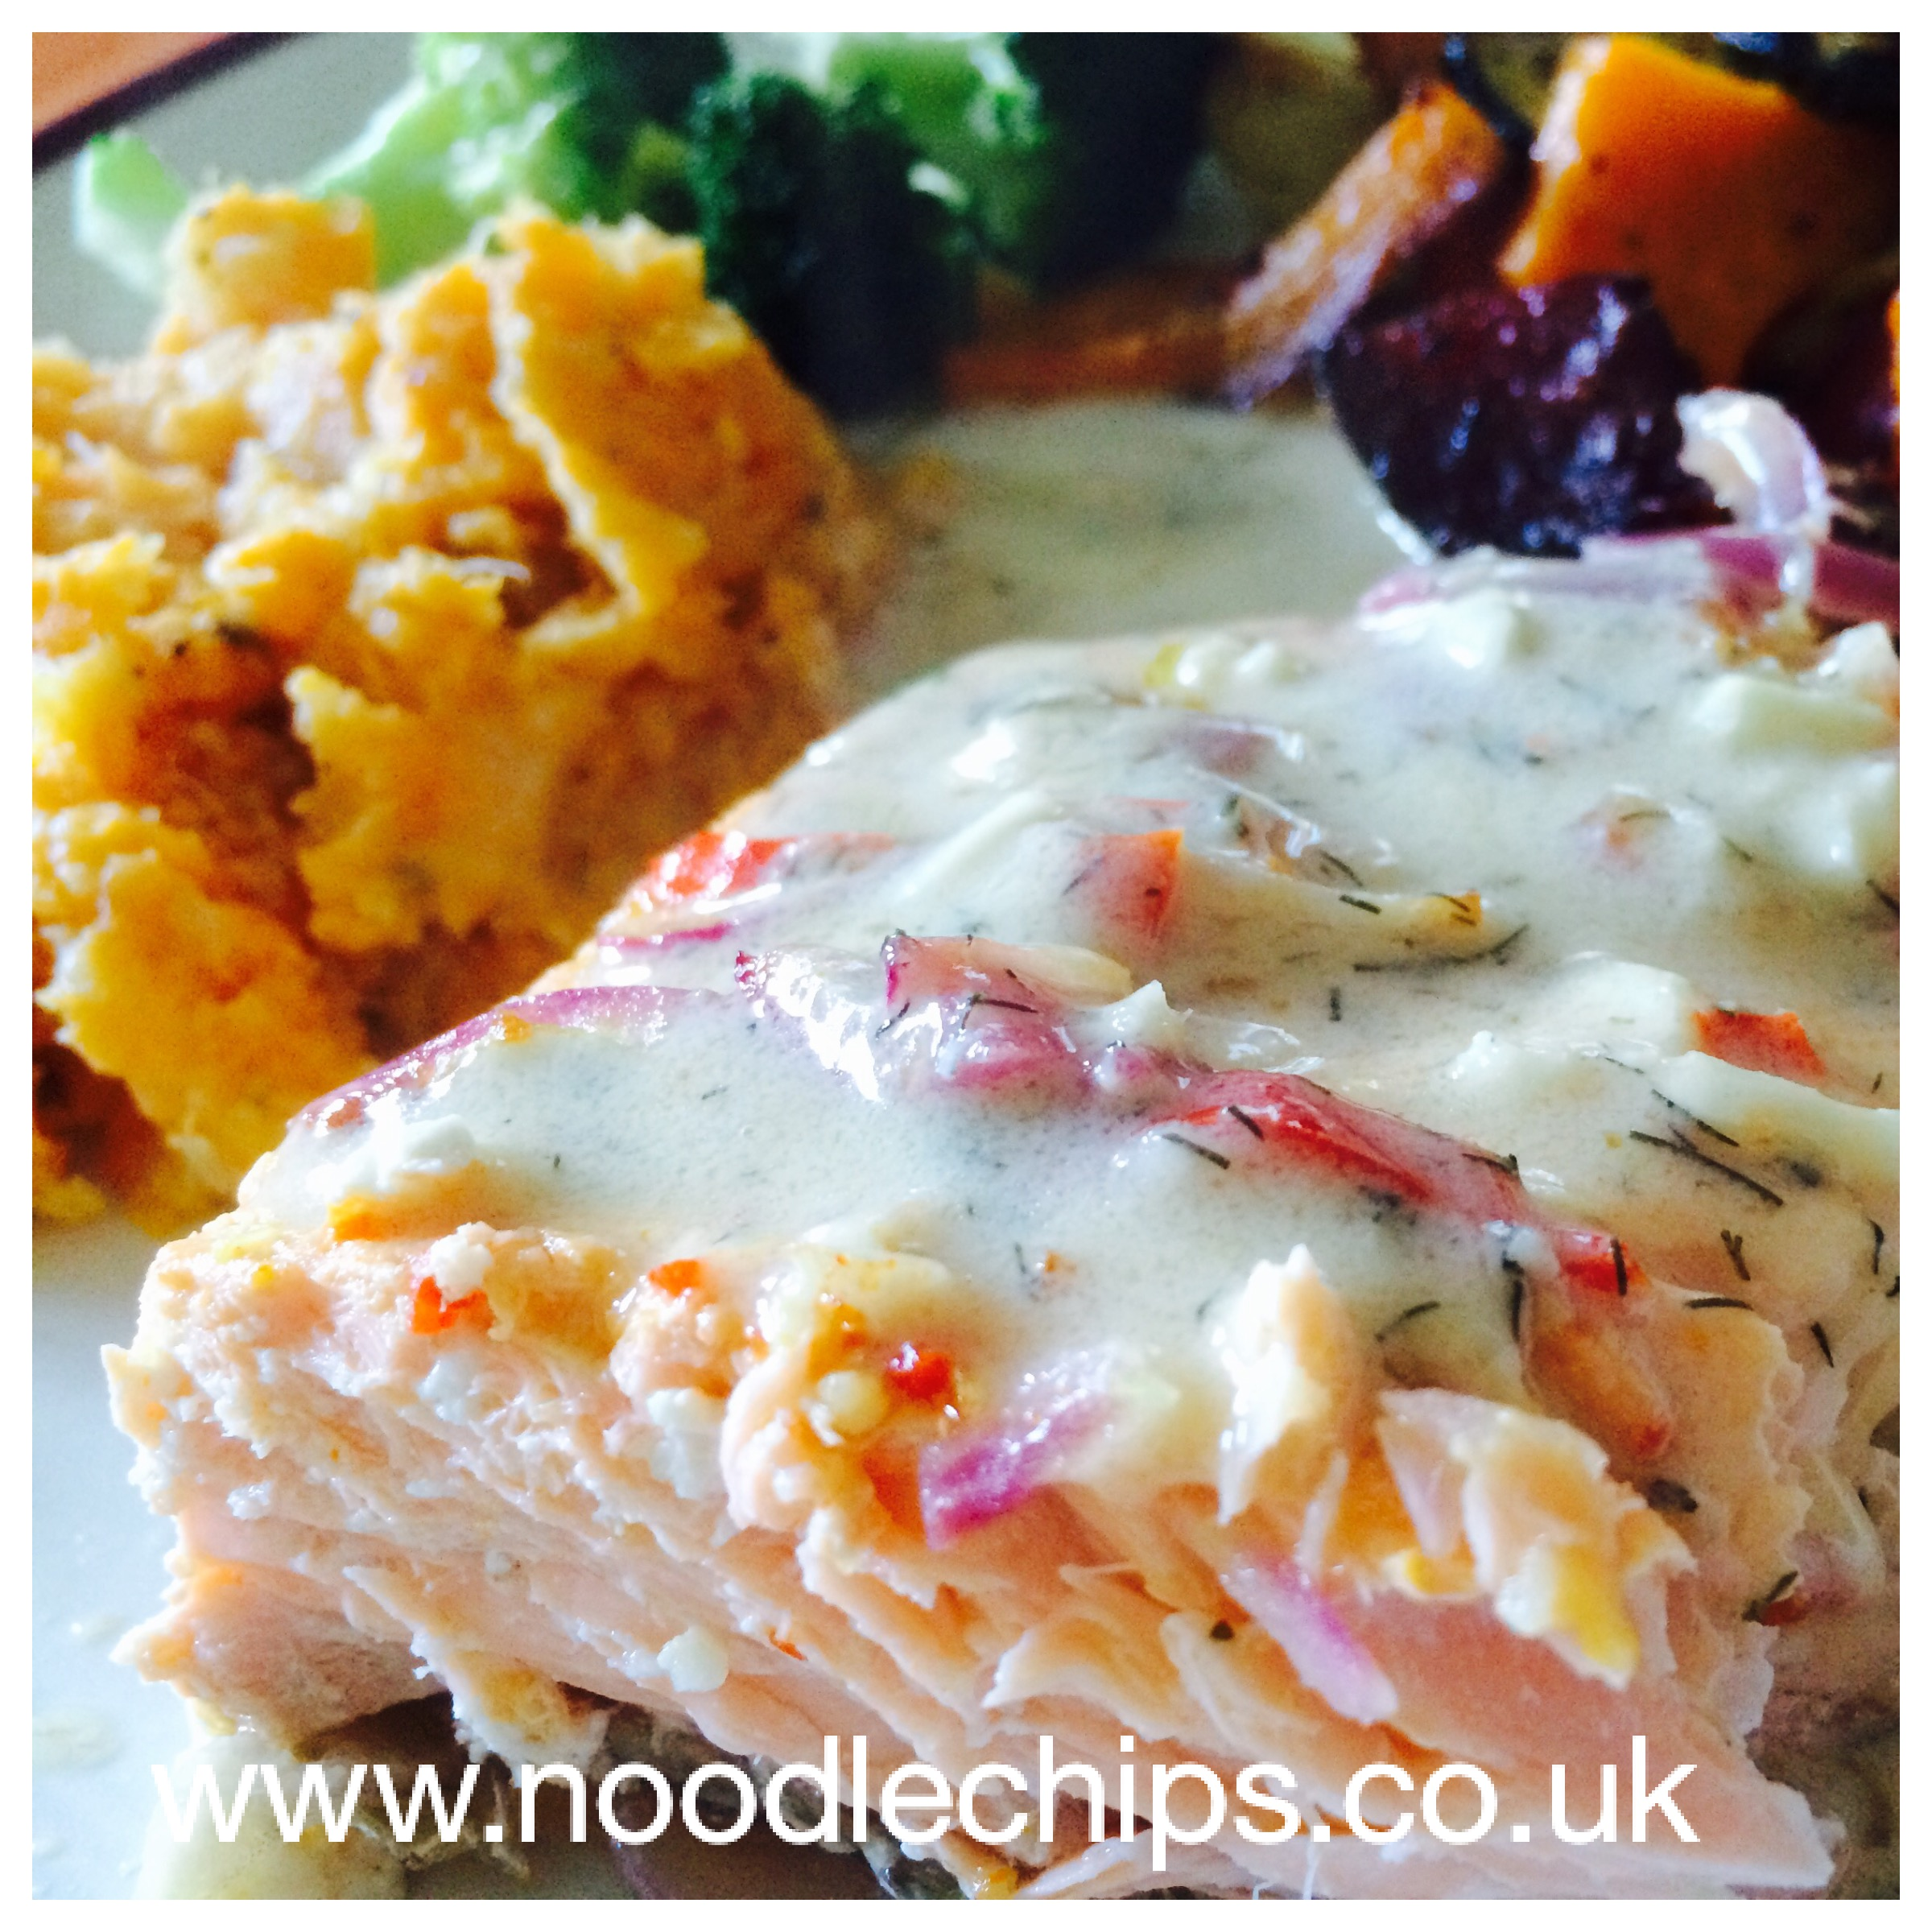 Salmon in a Creamy Dairy Free Sauce, perfect served with Sweet Potato Mash and Roasted Veg